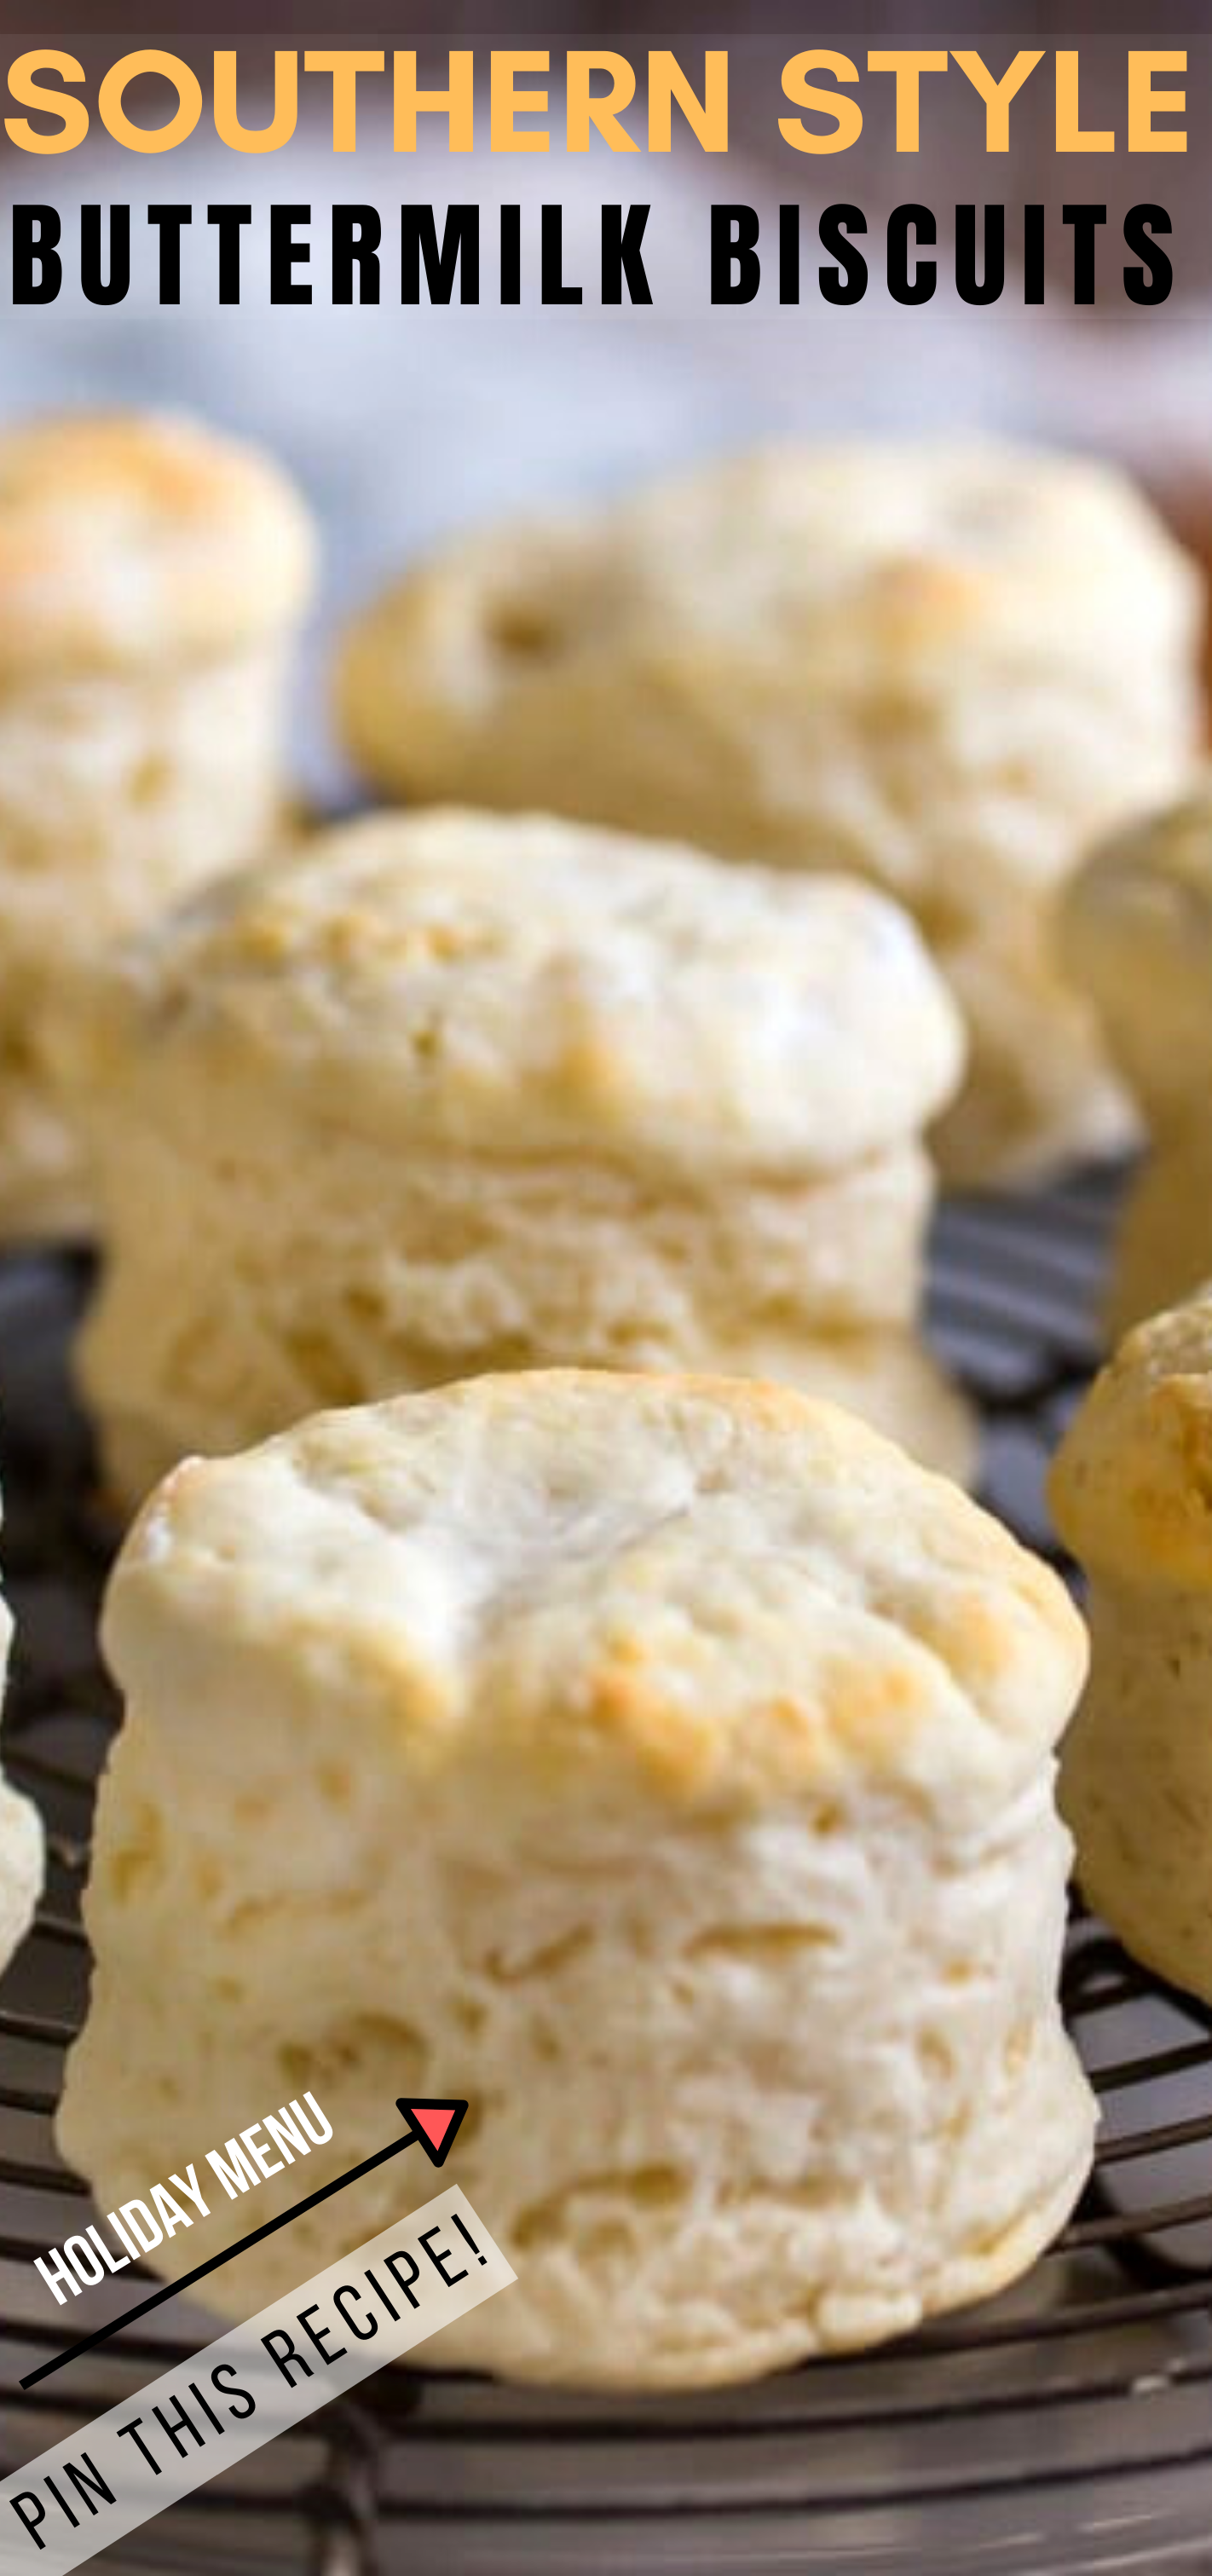 Pin By Linda Berninger On Food With Images Bread Recipes Homemade Biscuit Recipe Homemade Biscuits